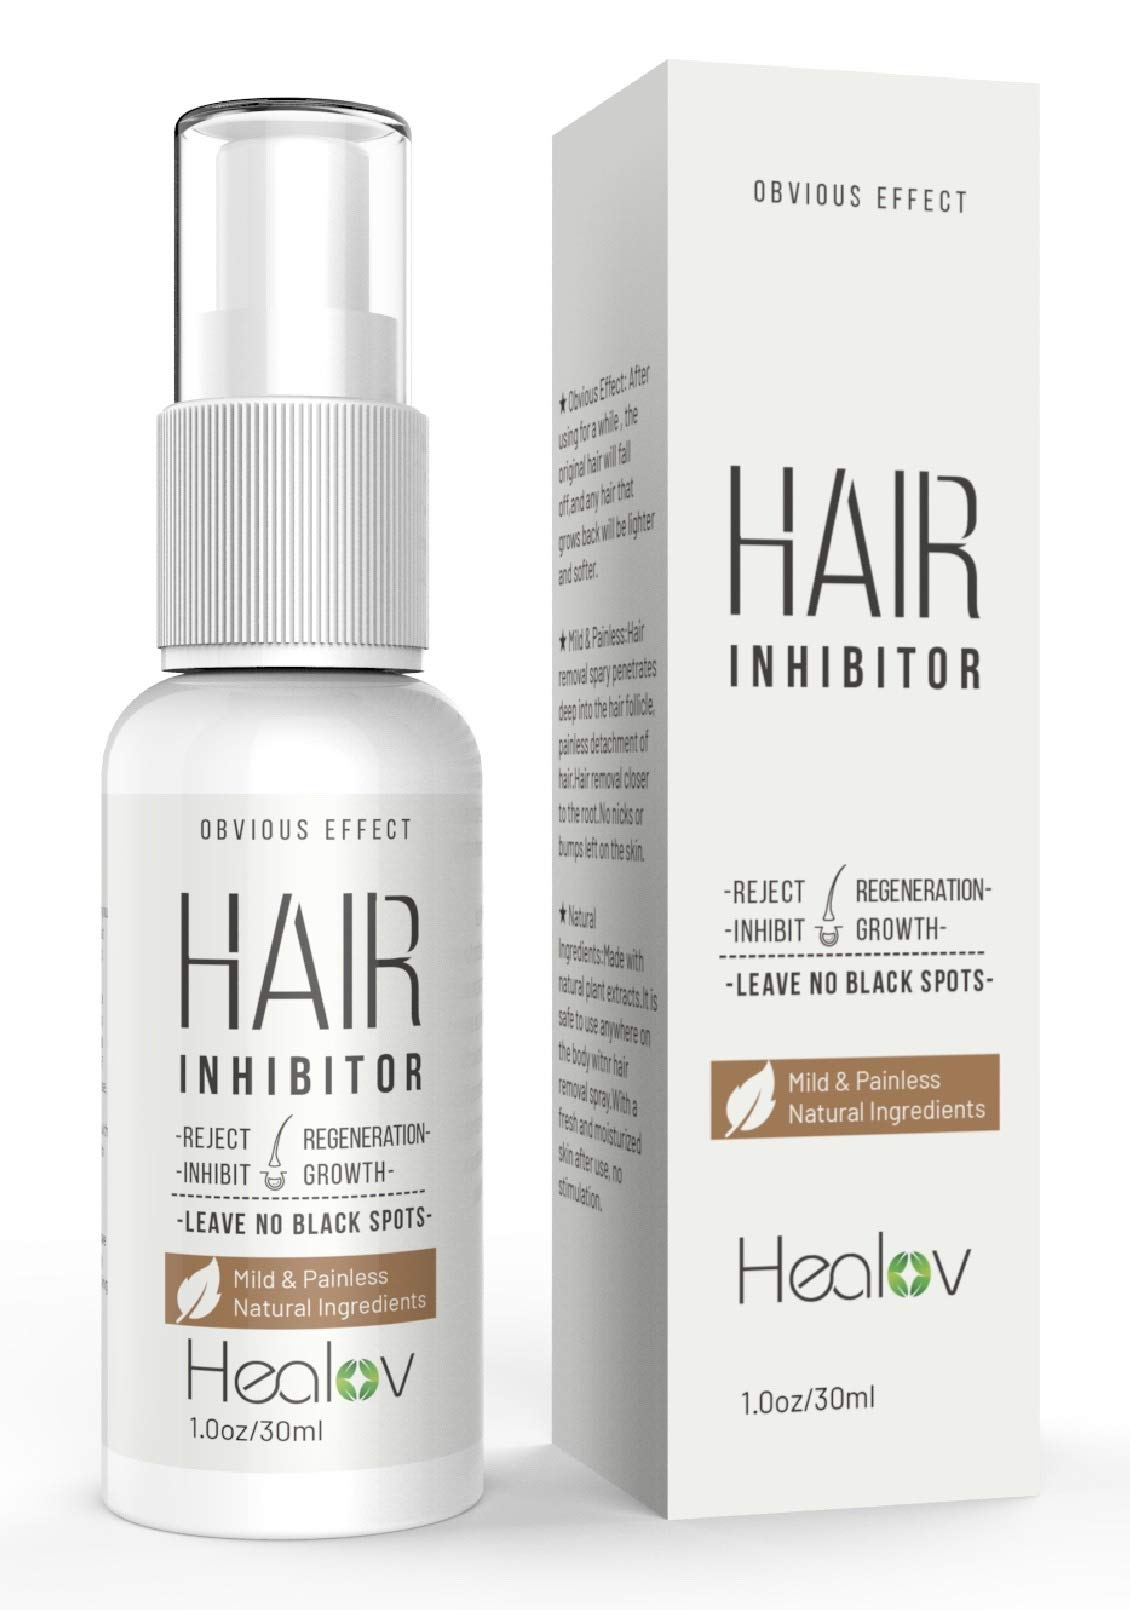 Natural Stop Grow Hair Growth Inhibitor Spray for Face, Body, Chin, Arms, Underarms, Bikini Zone Area, Bare Legs – Painless No Pain After Hair Removal Growth Stopper for Women & Men, 1oz/30ml